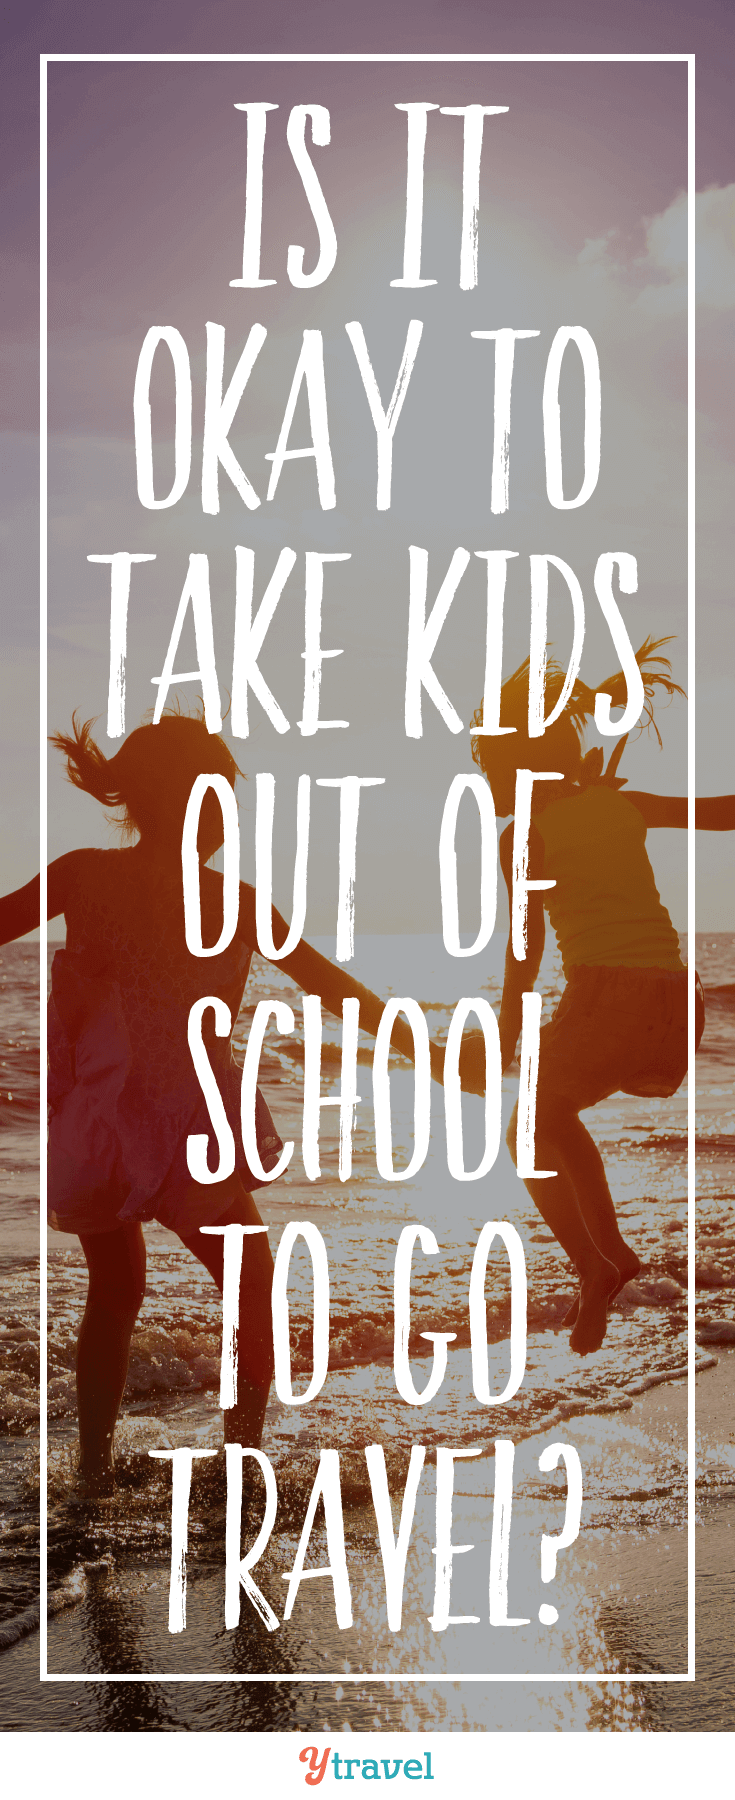 Is it okay to take kids out of school to go travel.